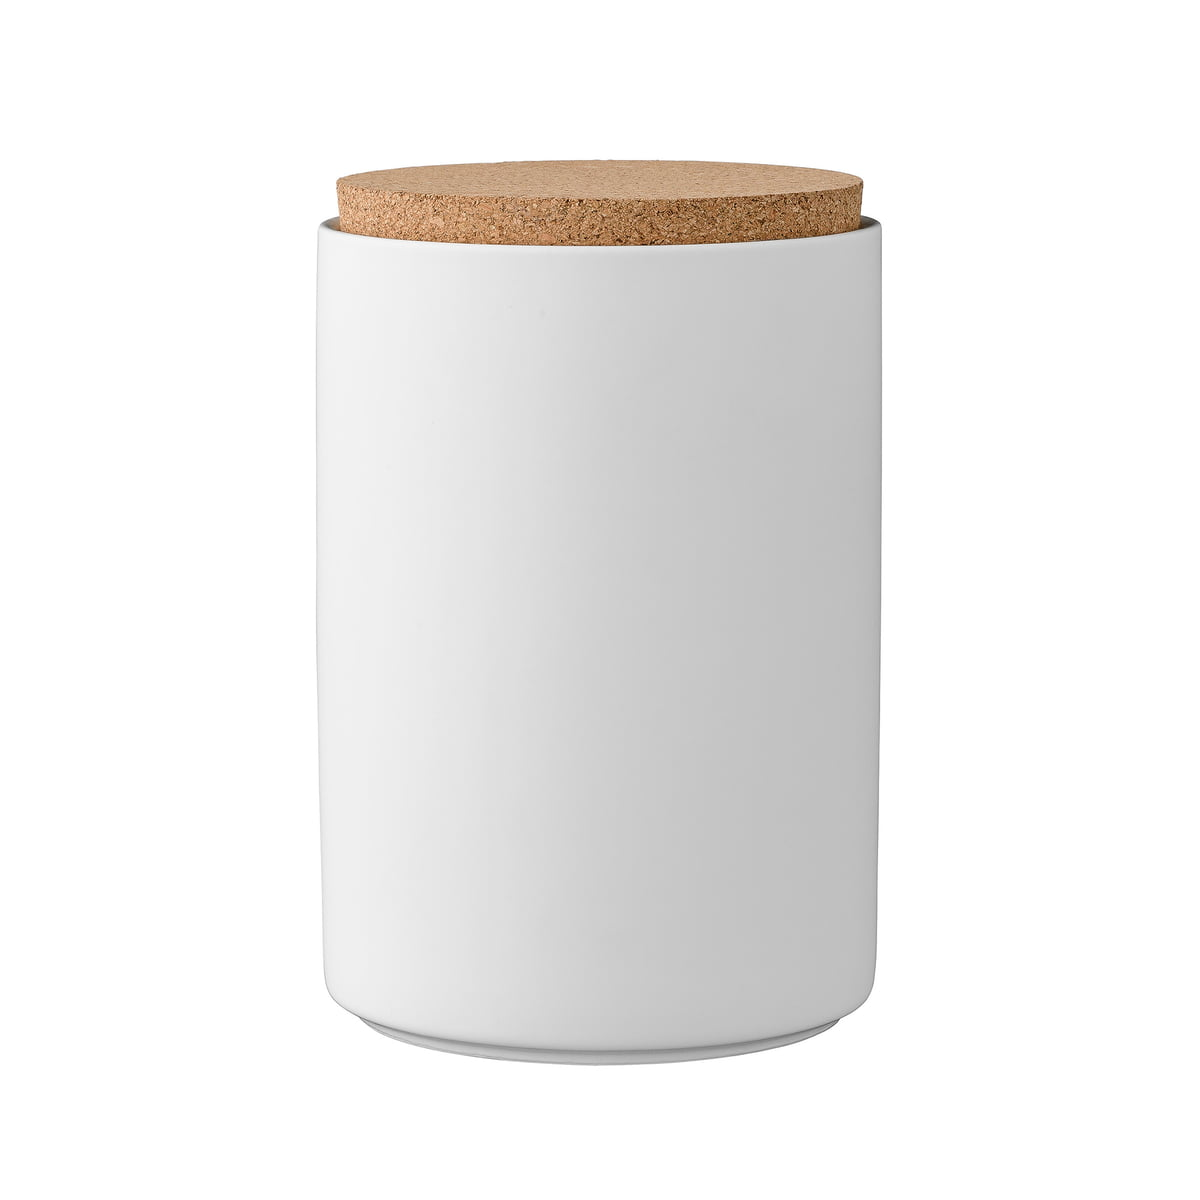 Storage Jar With Cork Lid H16 Cm By Bloomingville In White